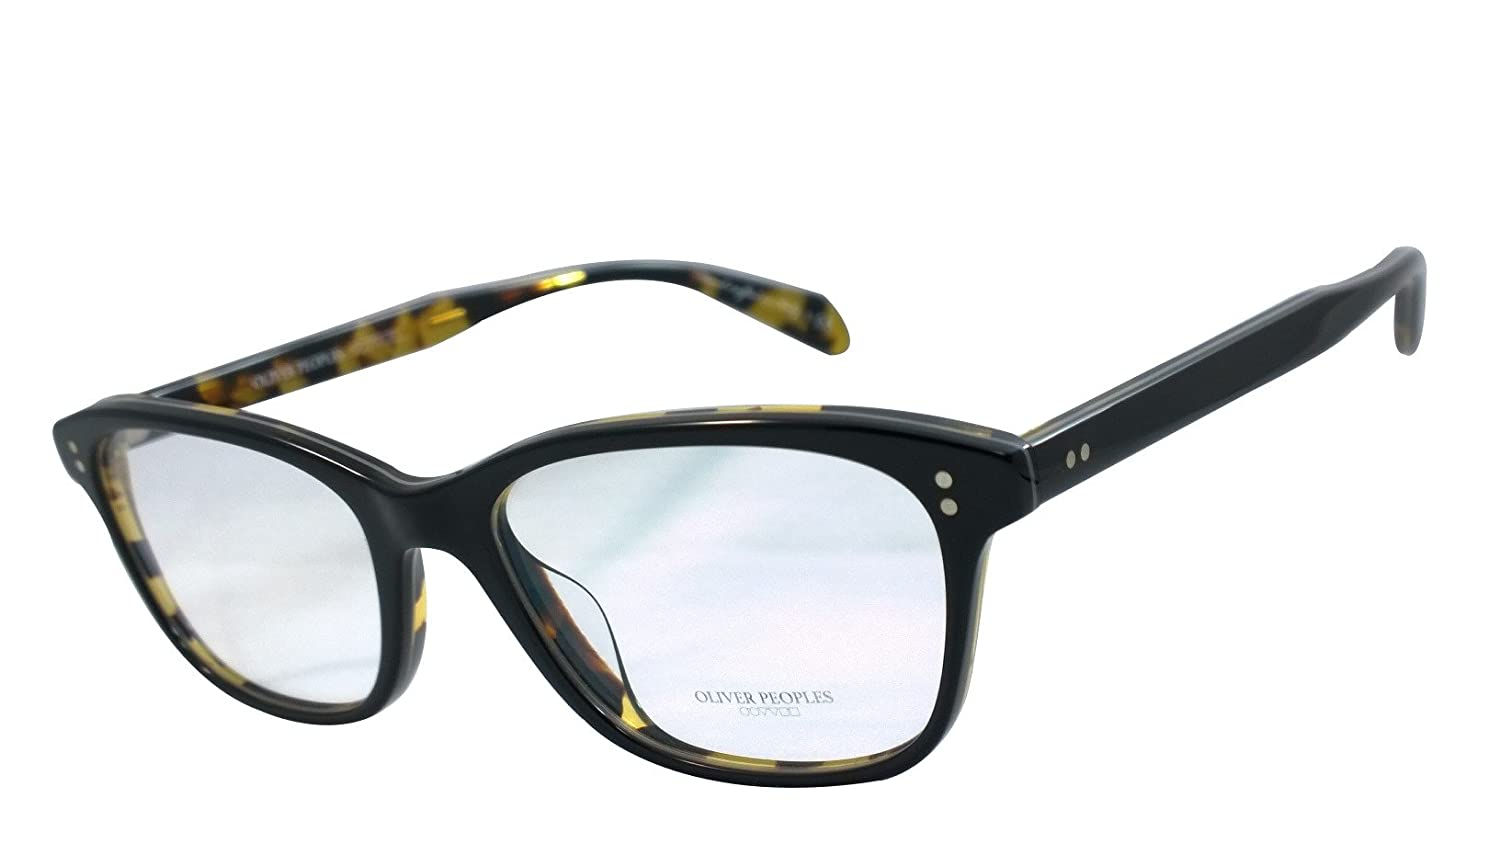 4ac4fb5e61 Amazon.com  Oliver Peoples Ov5224 Ashton 100% Authentic Women s Eyeglasses  52mm Black   Dark Tortoise Black 1309  Clothing